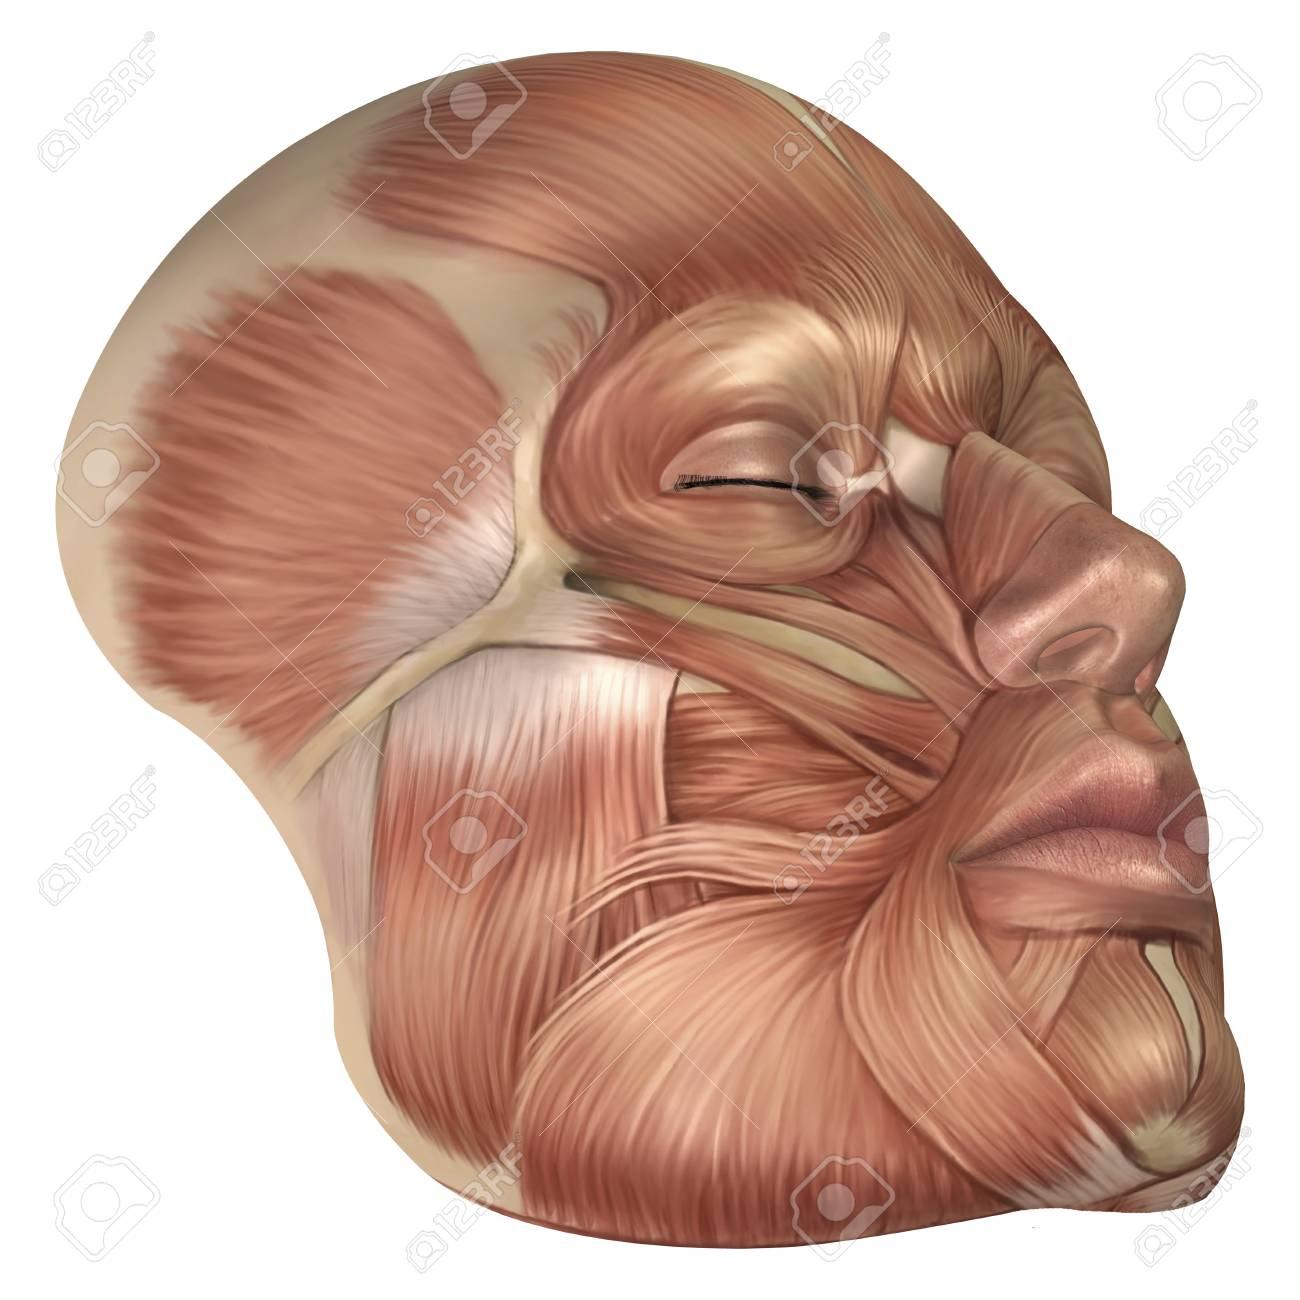 Anatomy Of Human Face Muscles Stock Photo Picture And Royalty Free